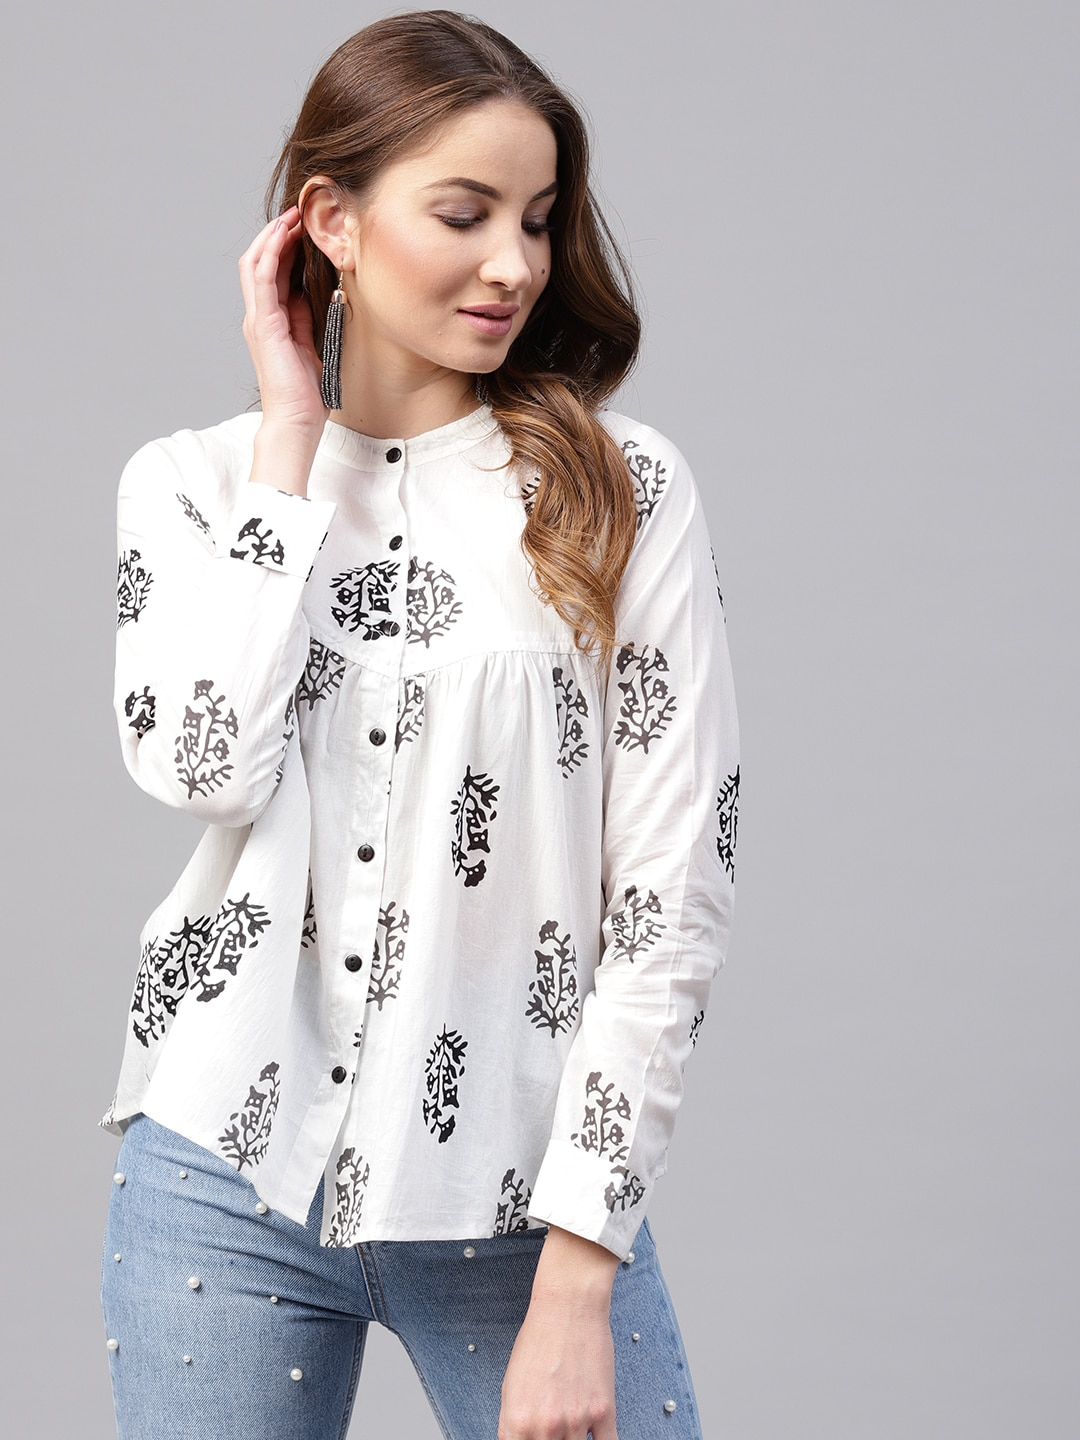 808b5802a8d47 Ladies Tops - Buy Tops   T-shirts for Women Online